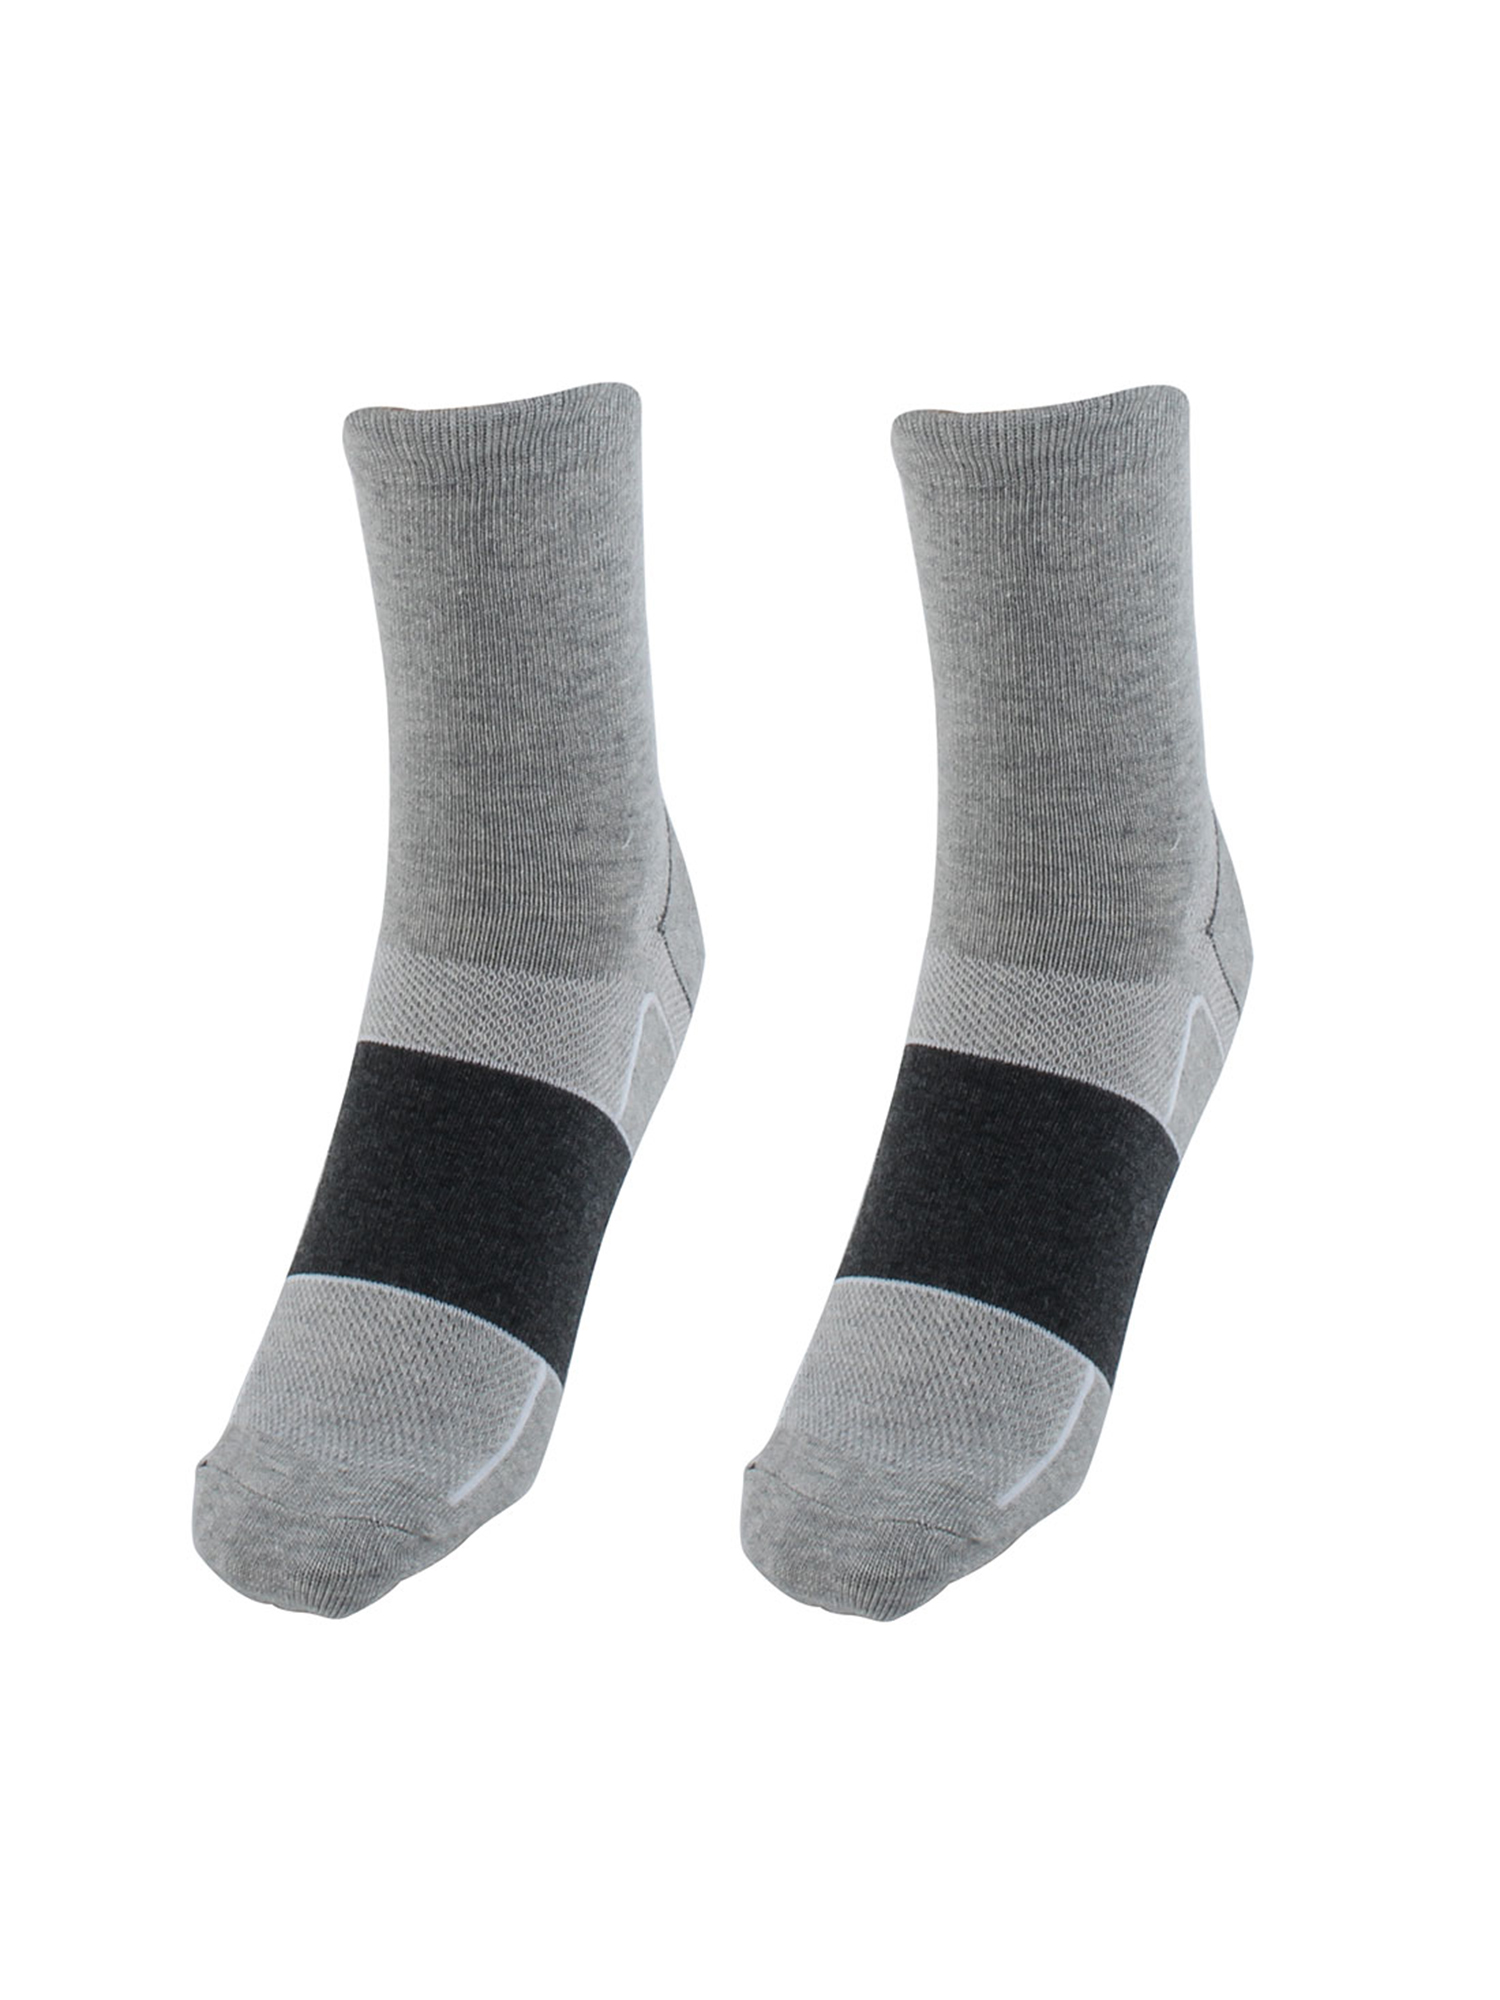 R-BAO Authorized Basketball Cotton Blend Breathable Cycling Socks Pair